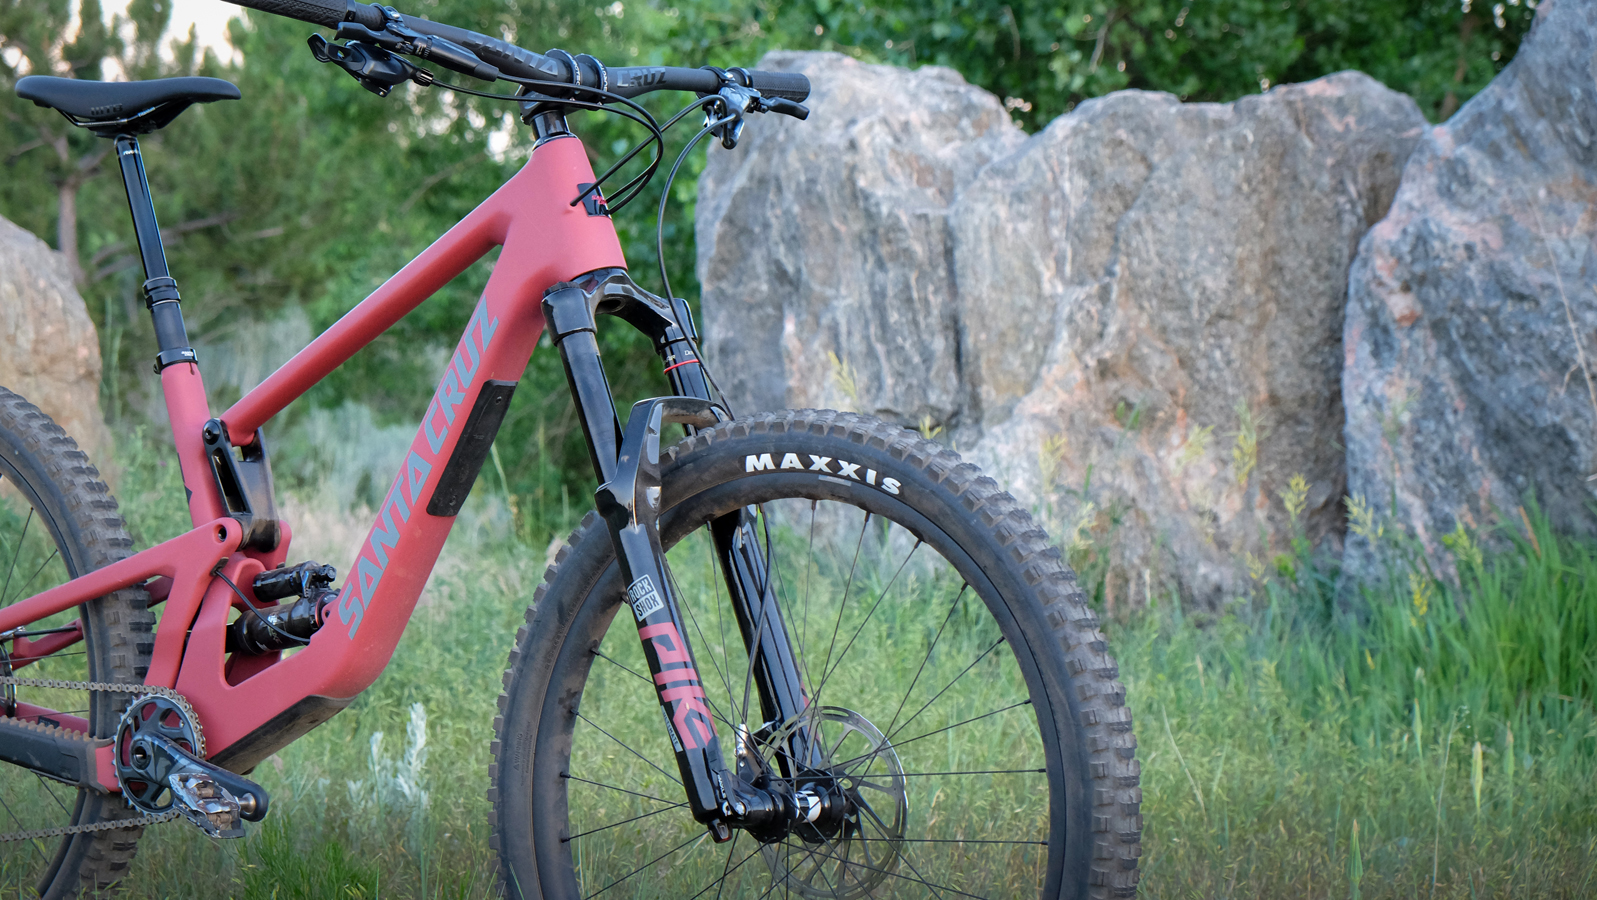 The 5010 is nimble, sporty, and helps riders find new lines on familiar trails.